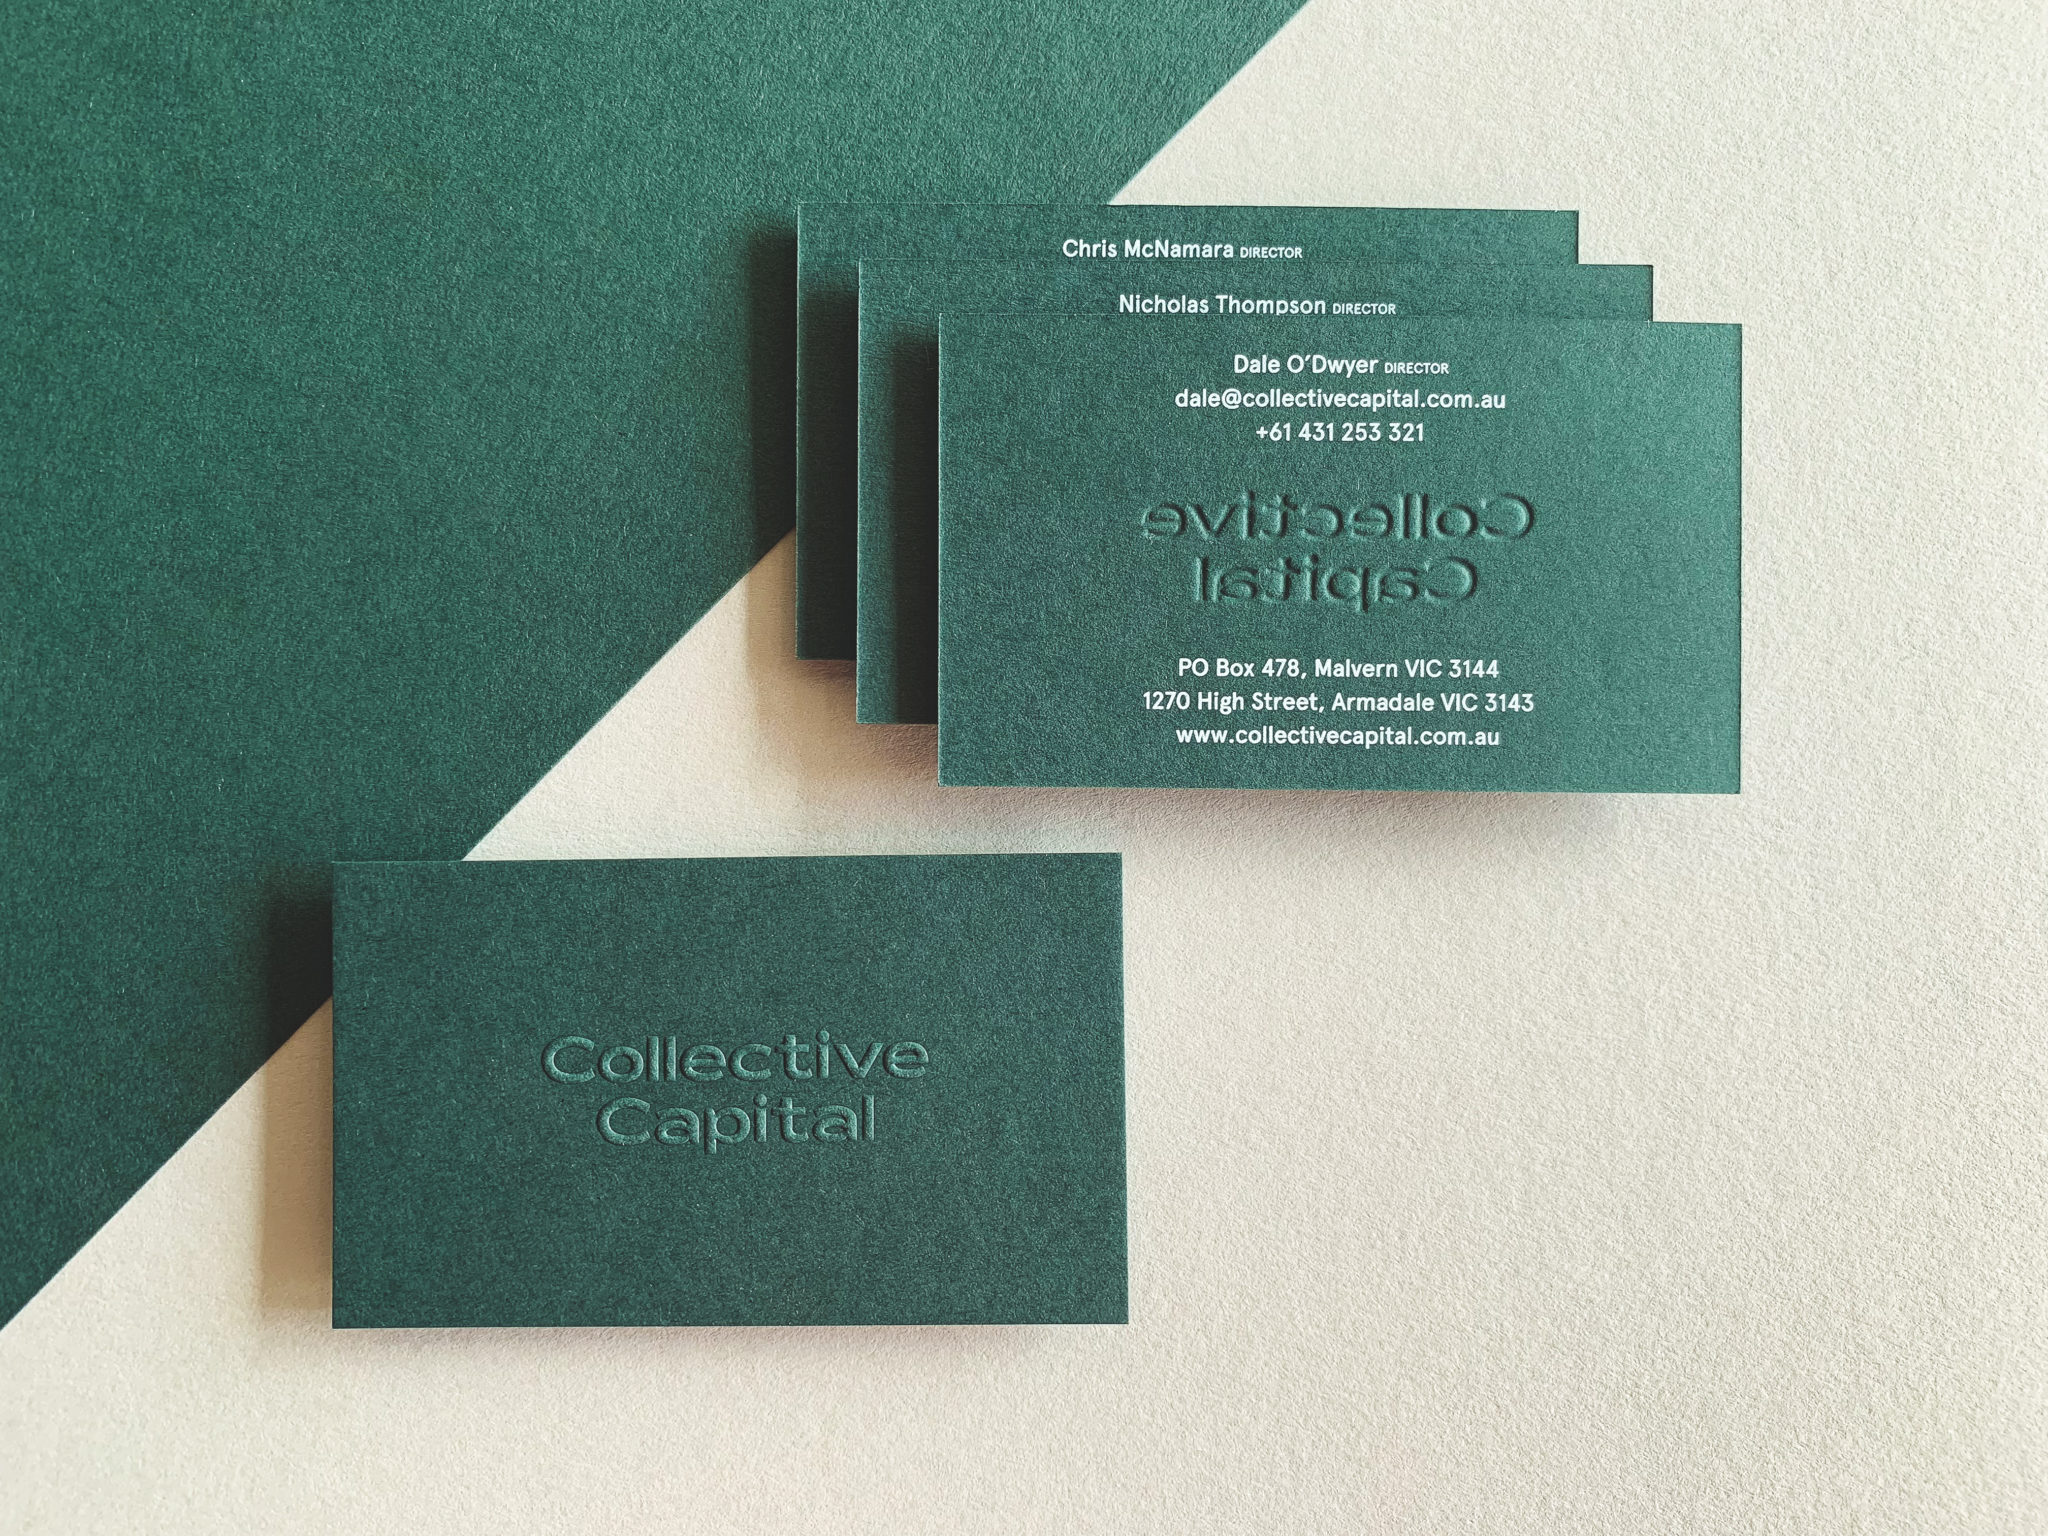 Embossed Opaque White Digital Business Cards for Collective Capital on Colorplan